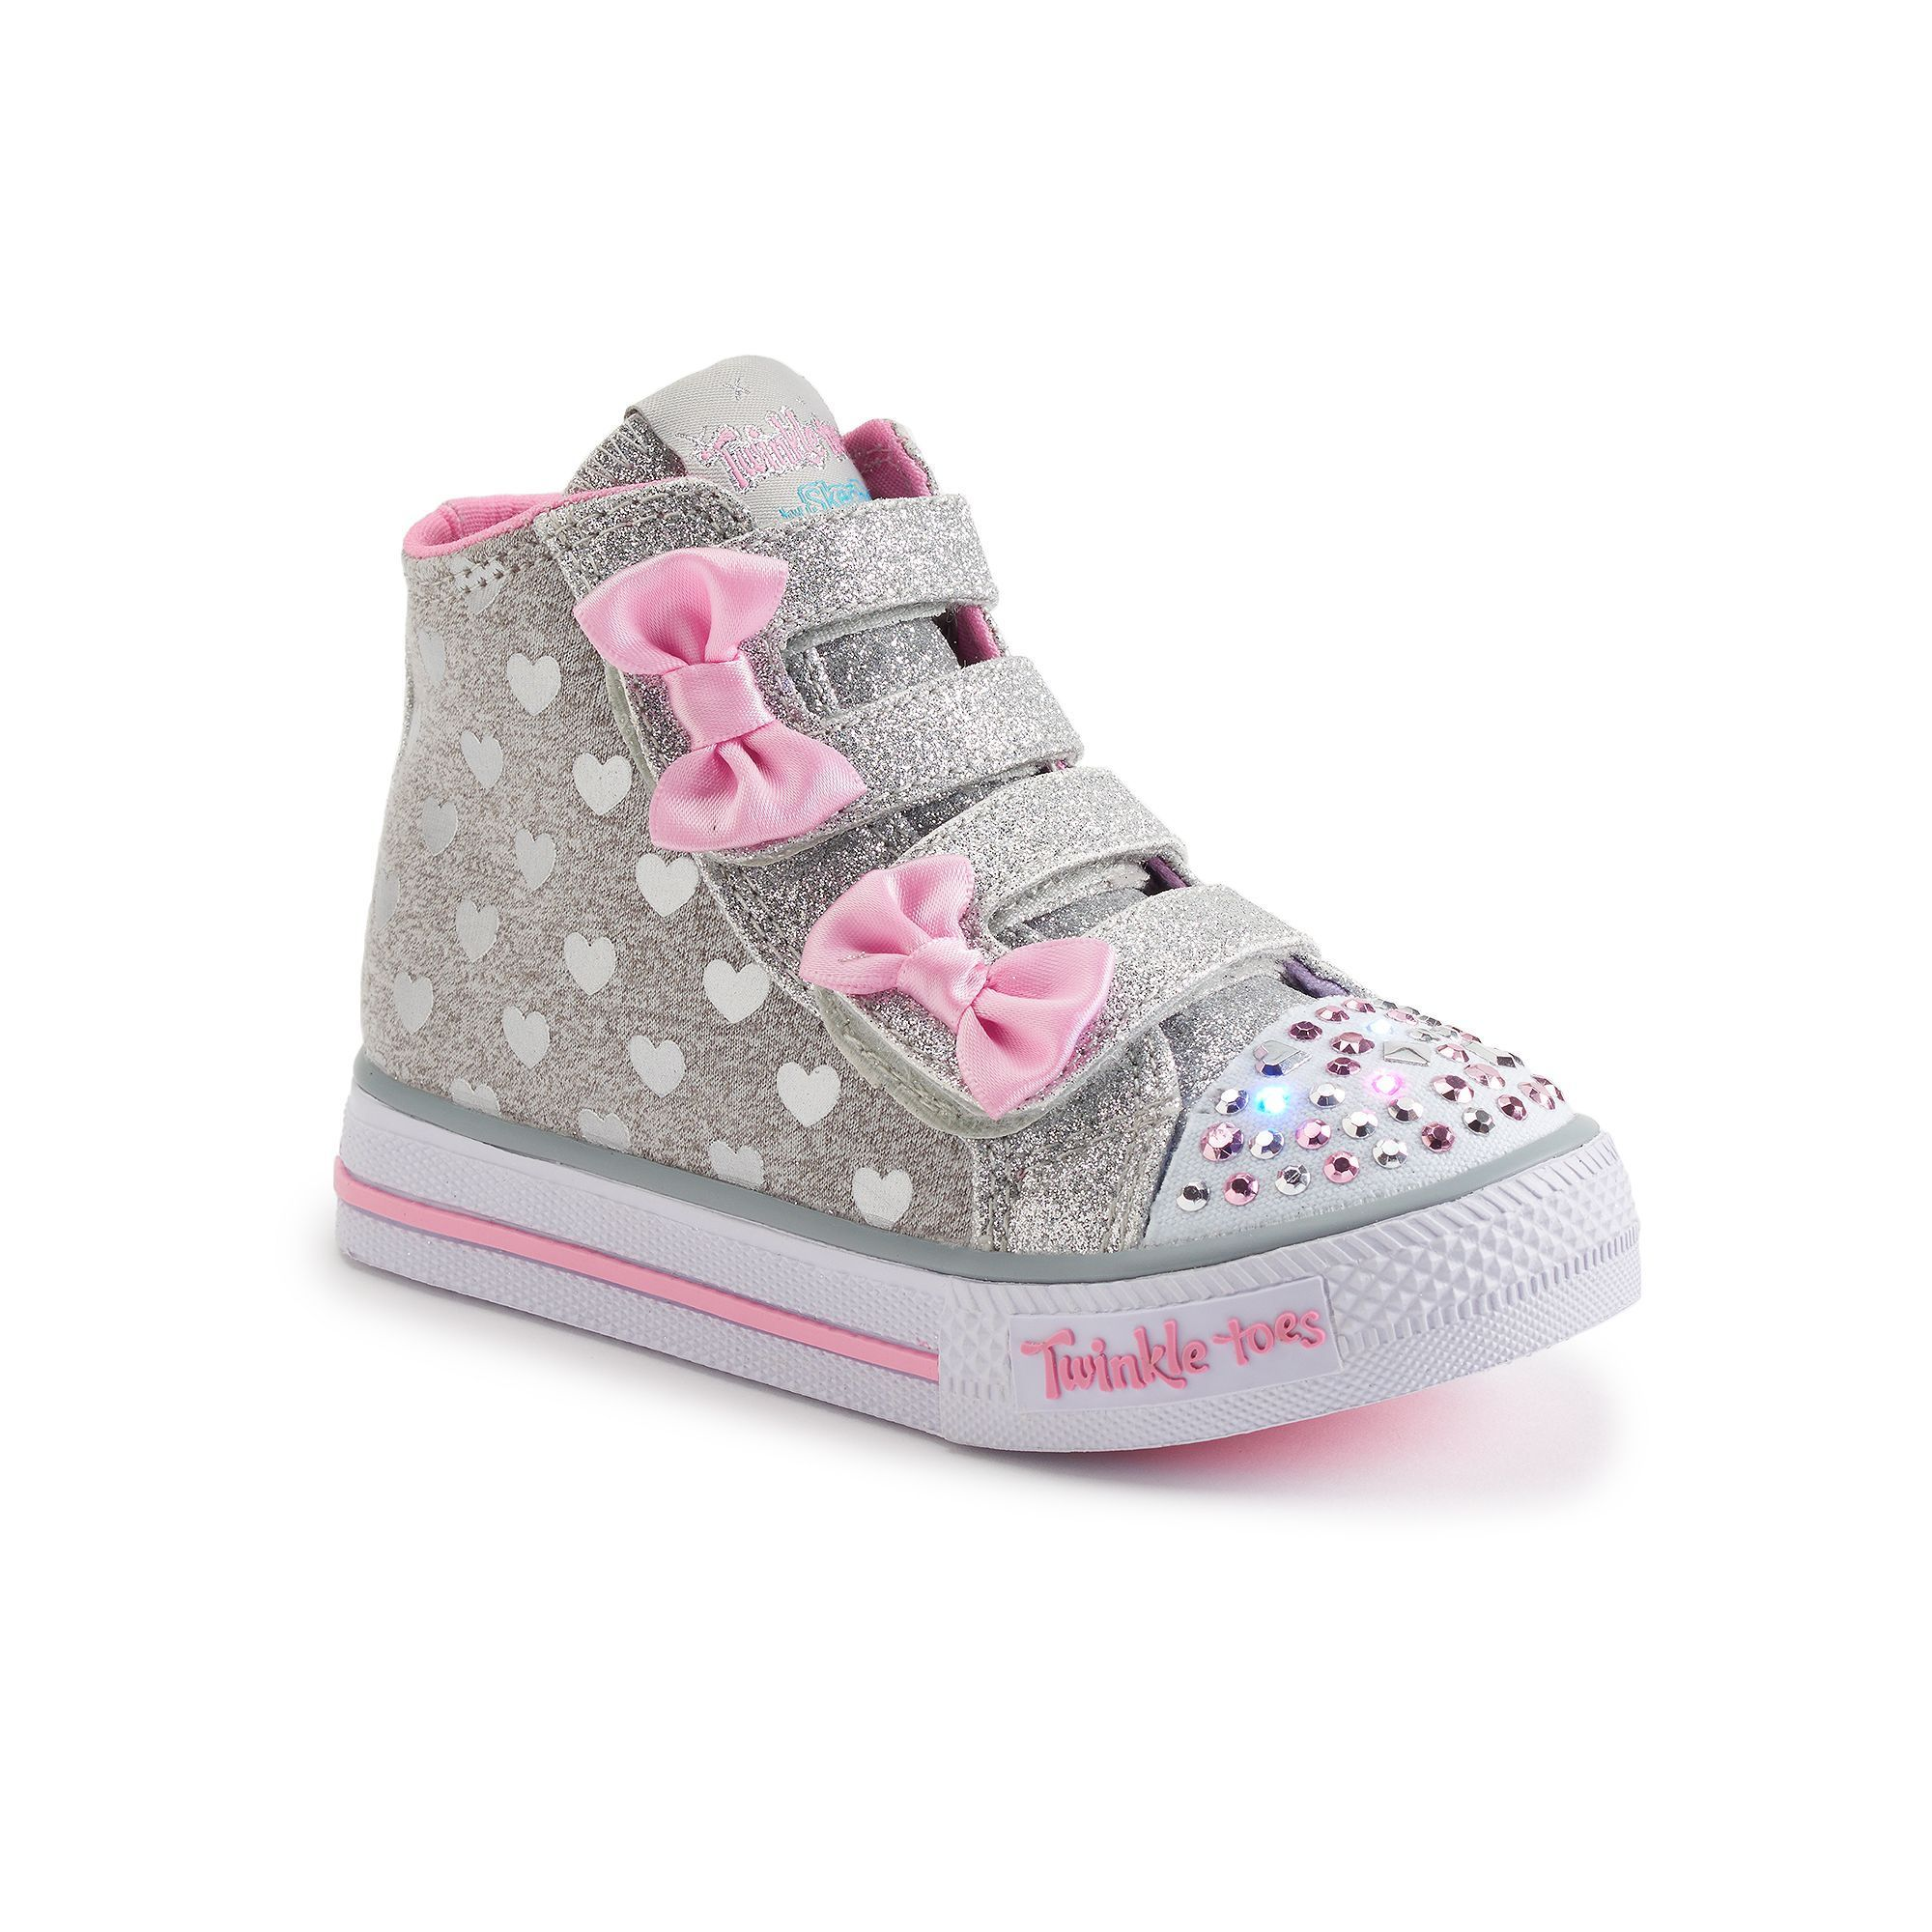 d37eb89813a8 Skechers Twinkle Toes Shuffles Doodle Day Toddler Girls  Light-Up Shoes